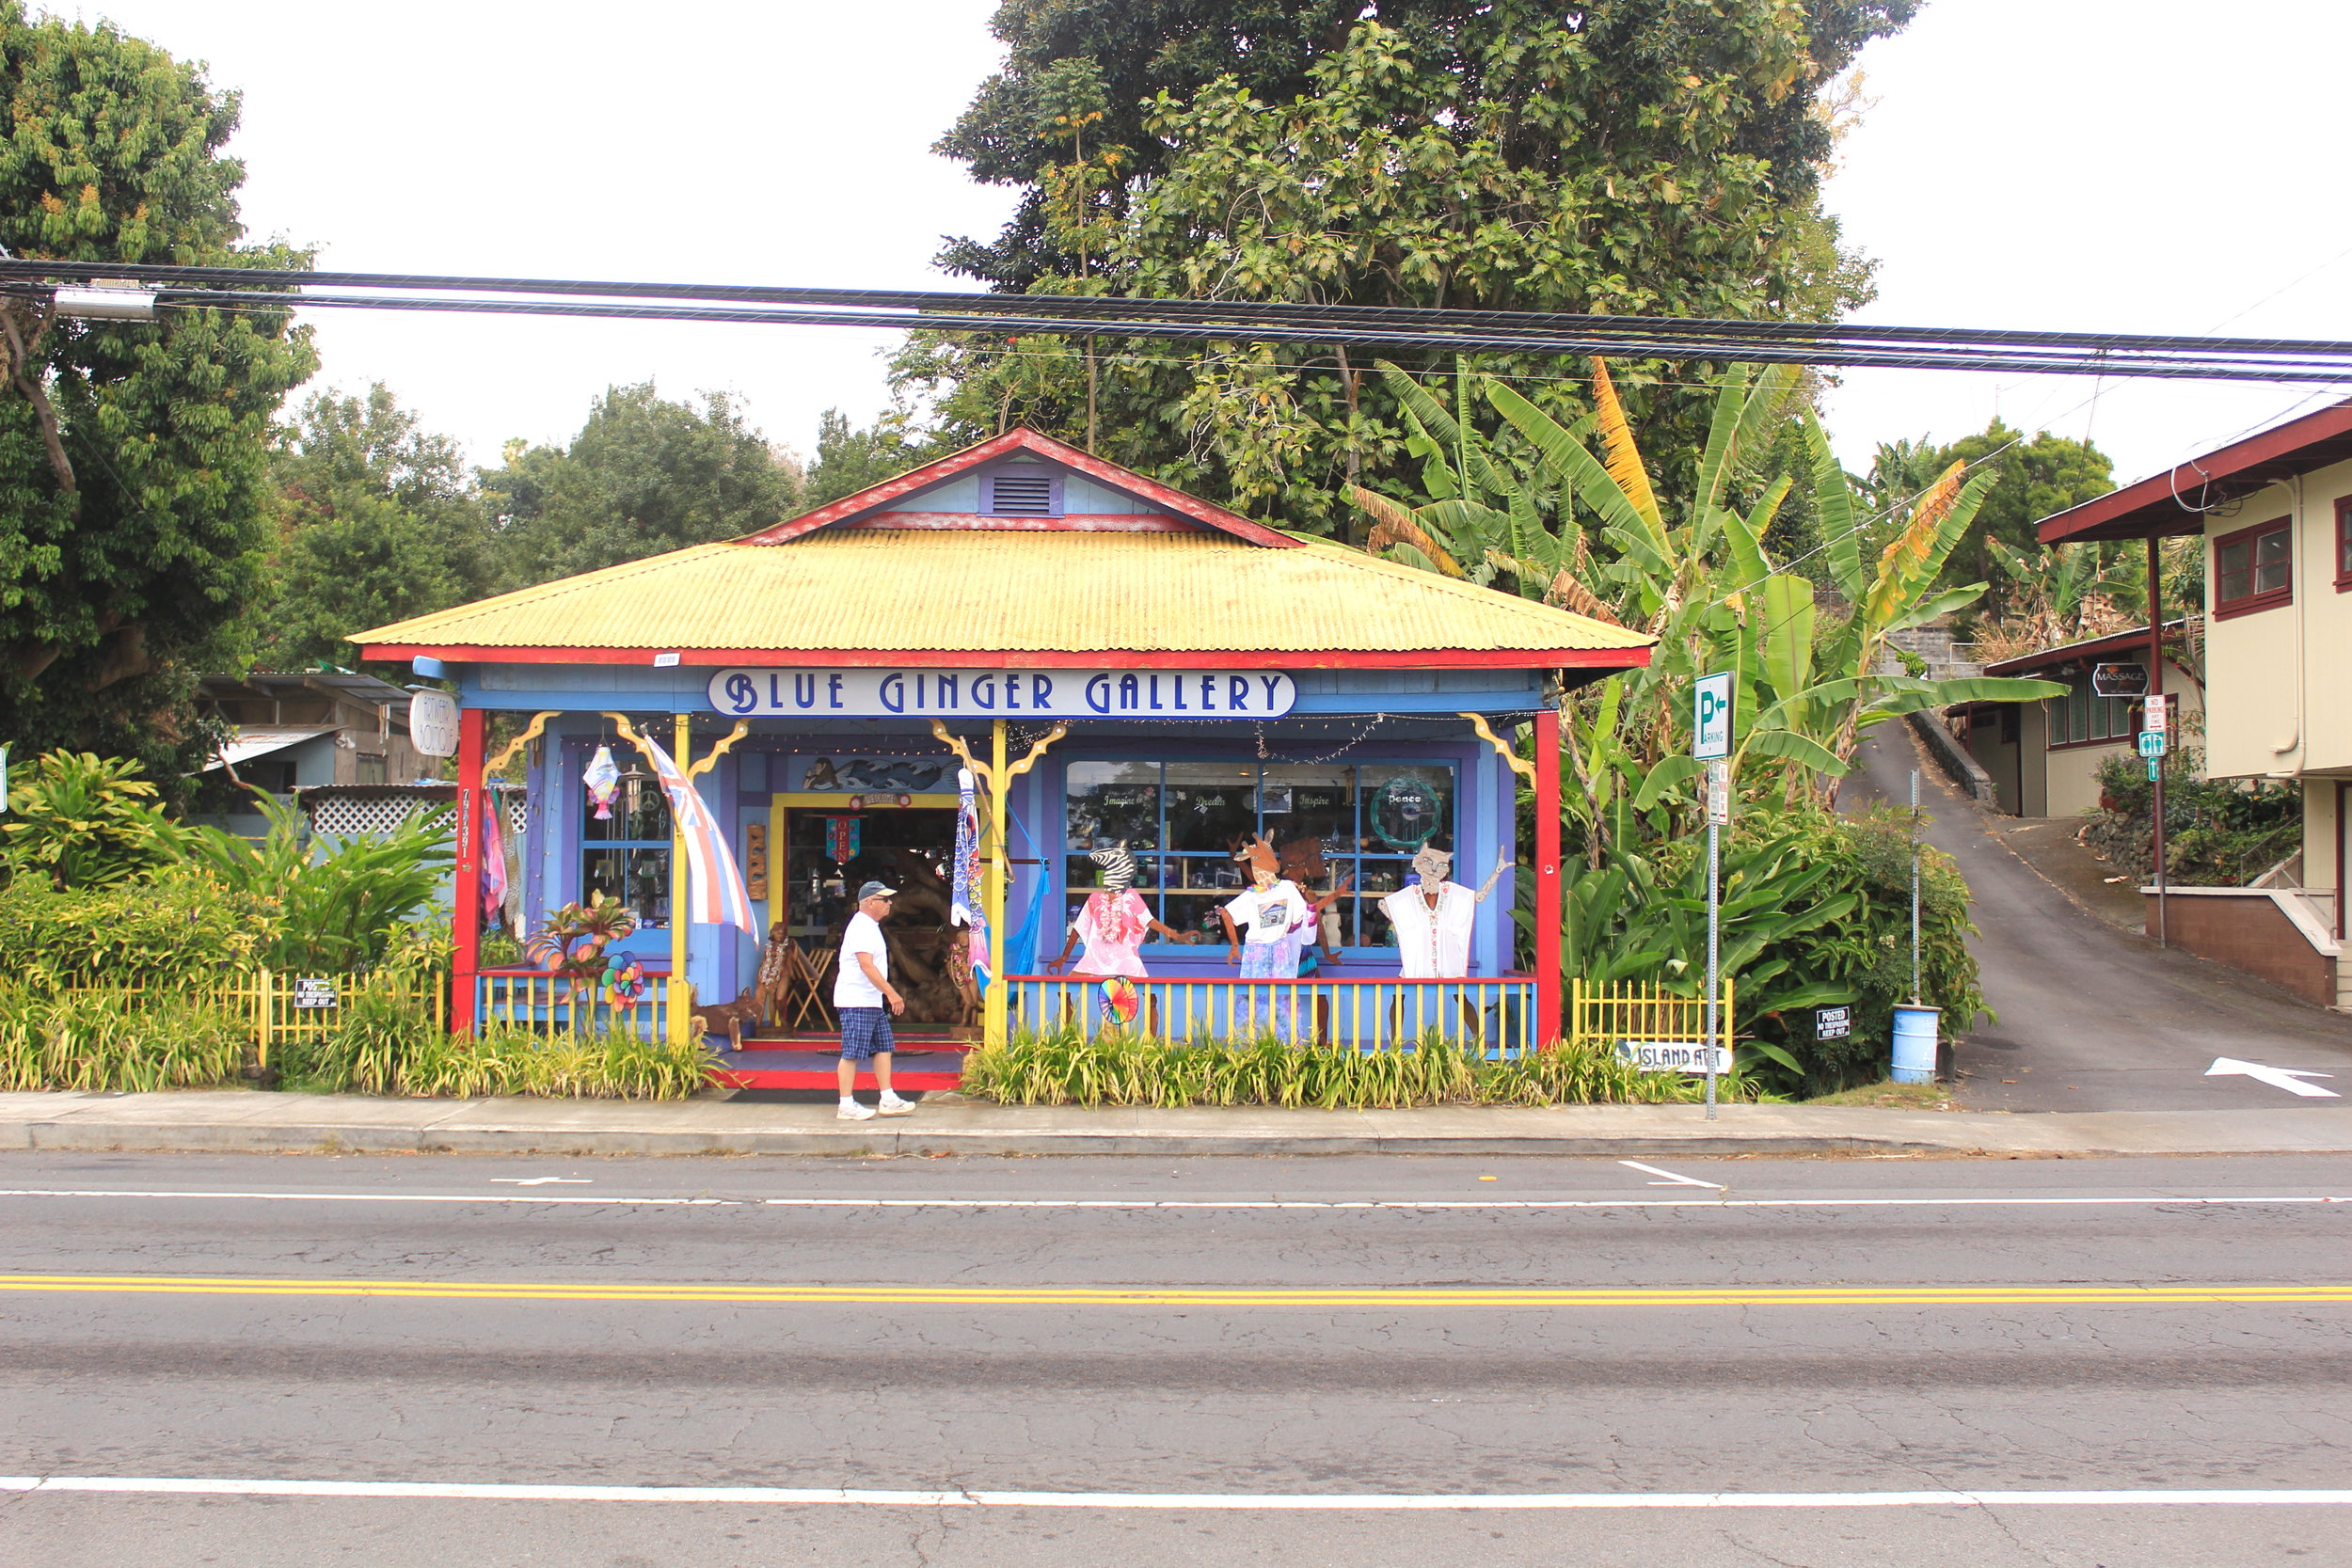 Tiny town of Kainaliu, Hawaii